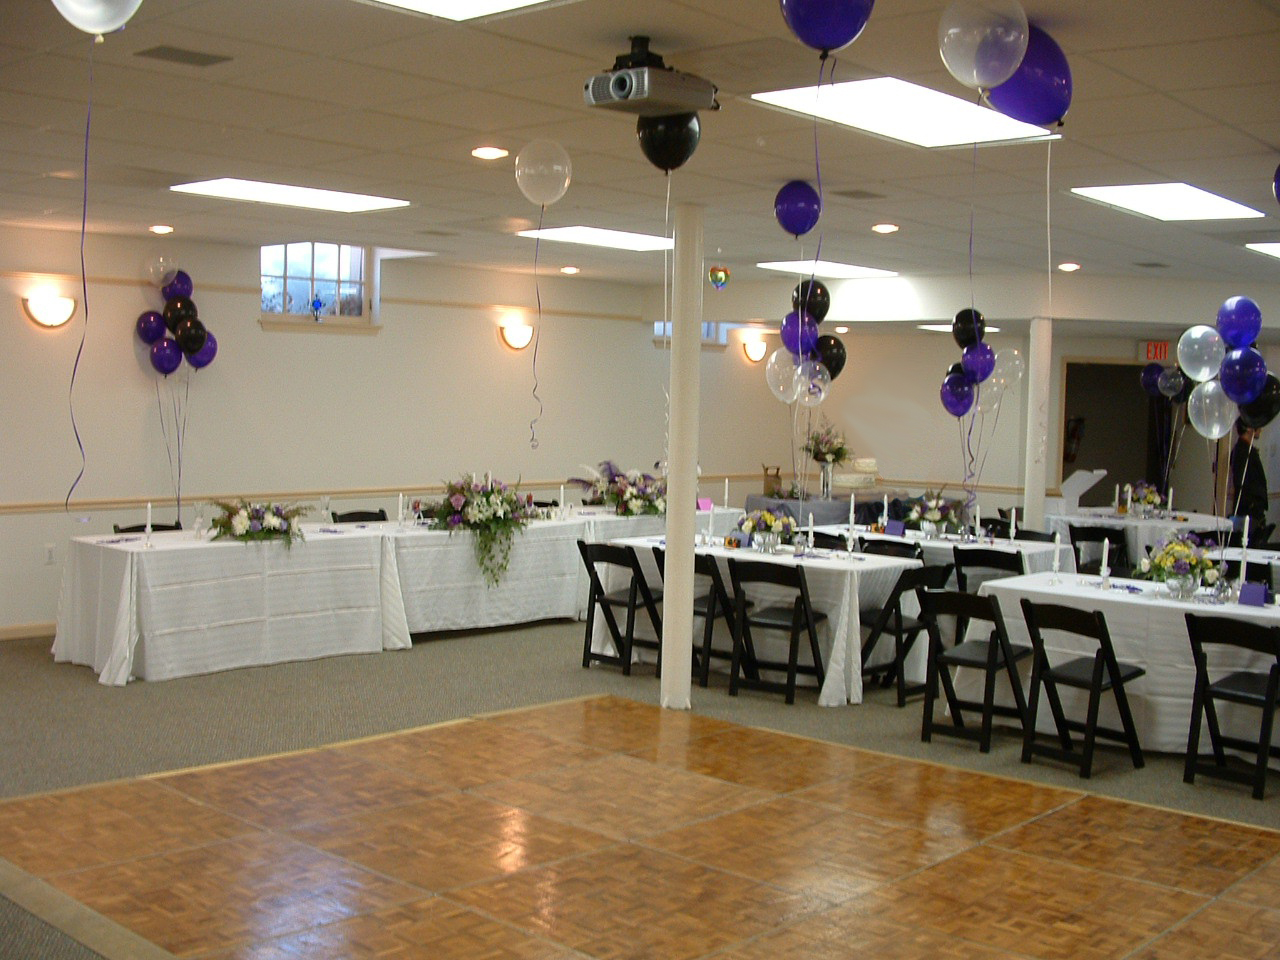 fellowship hall with wedding decorations and dance floor